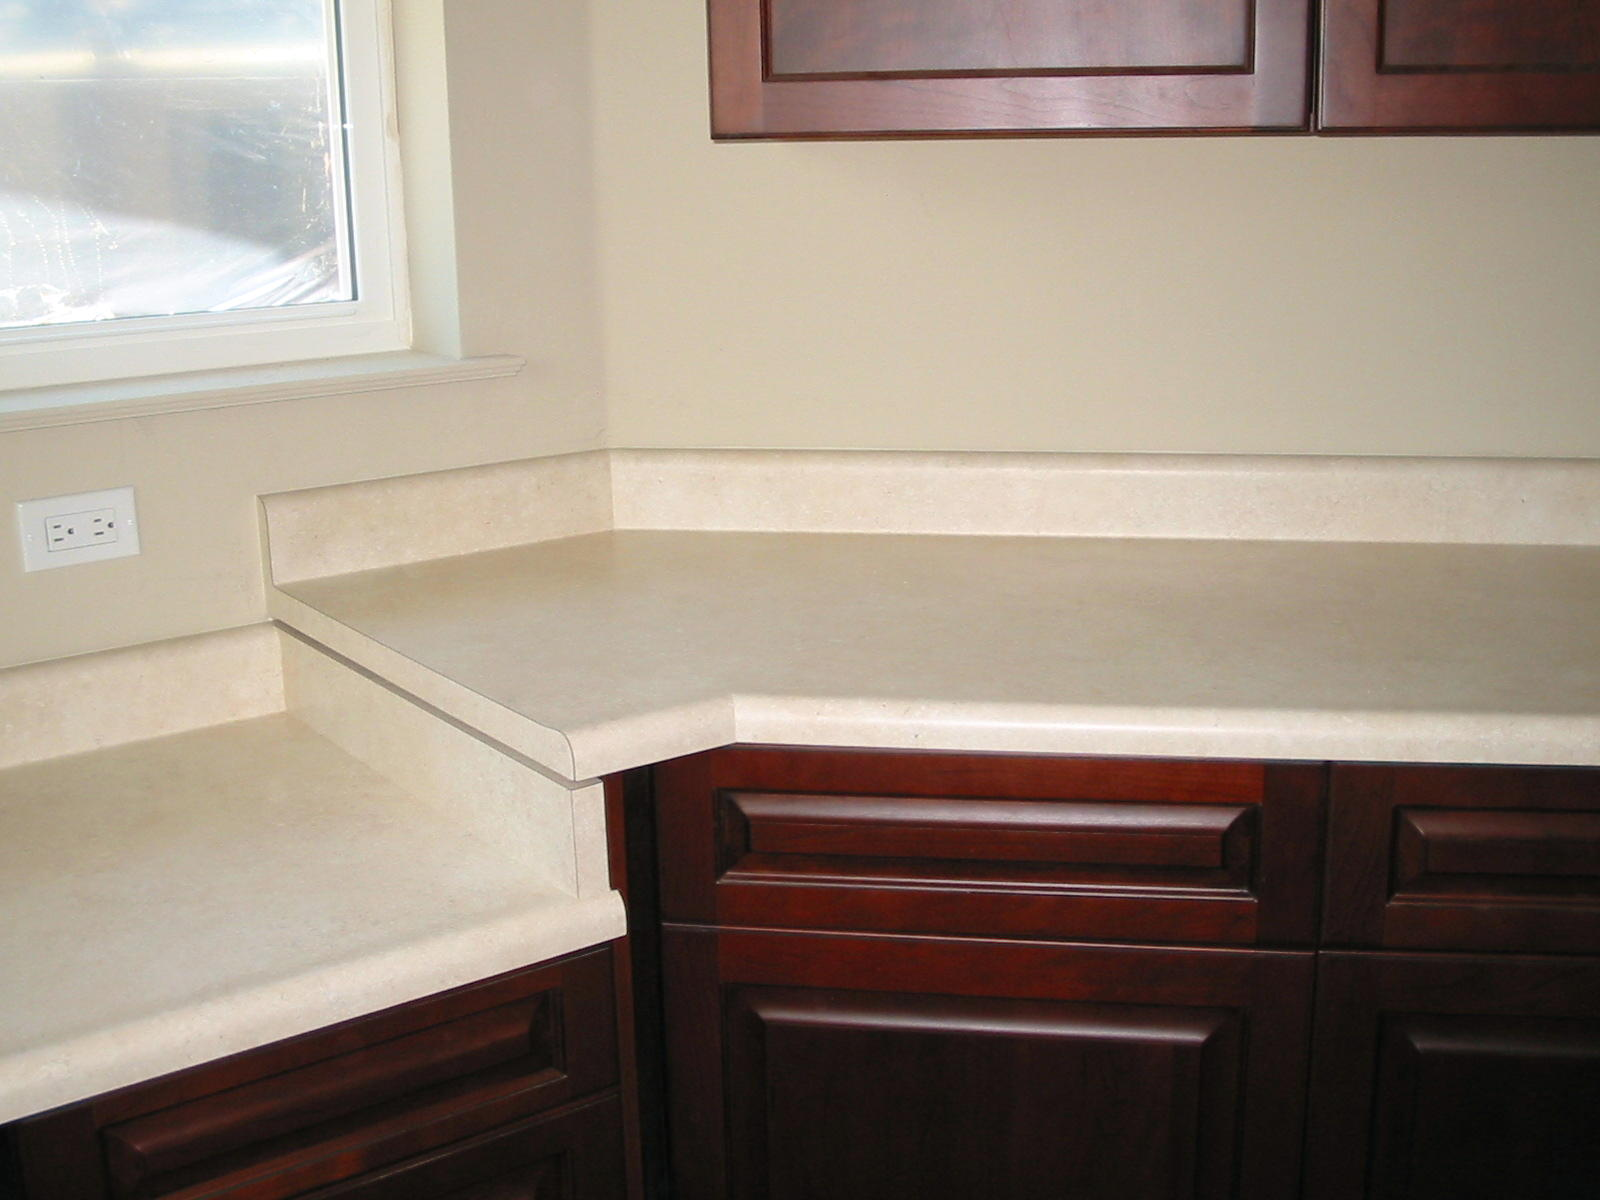 New Laundry Room Tops With No Drip Front Edge And Coved Waterfall Backsplash,  Fitted In Odd Angle Corner.